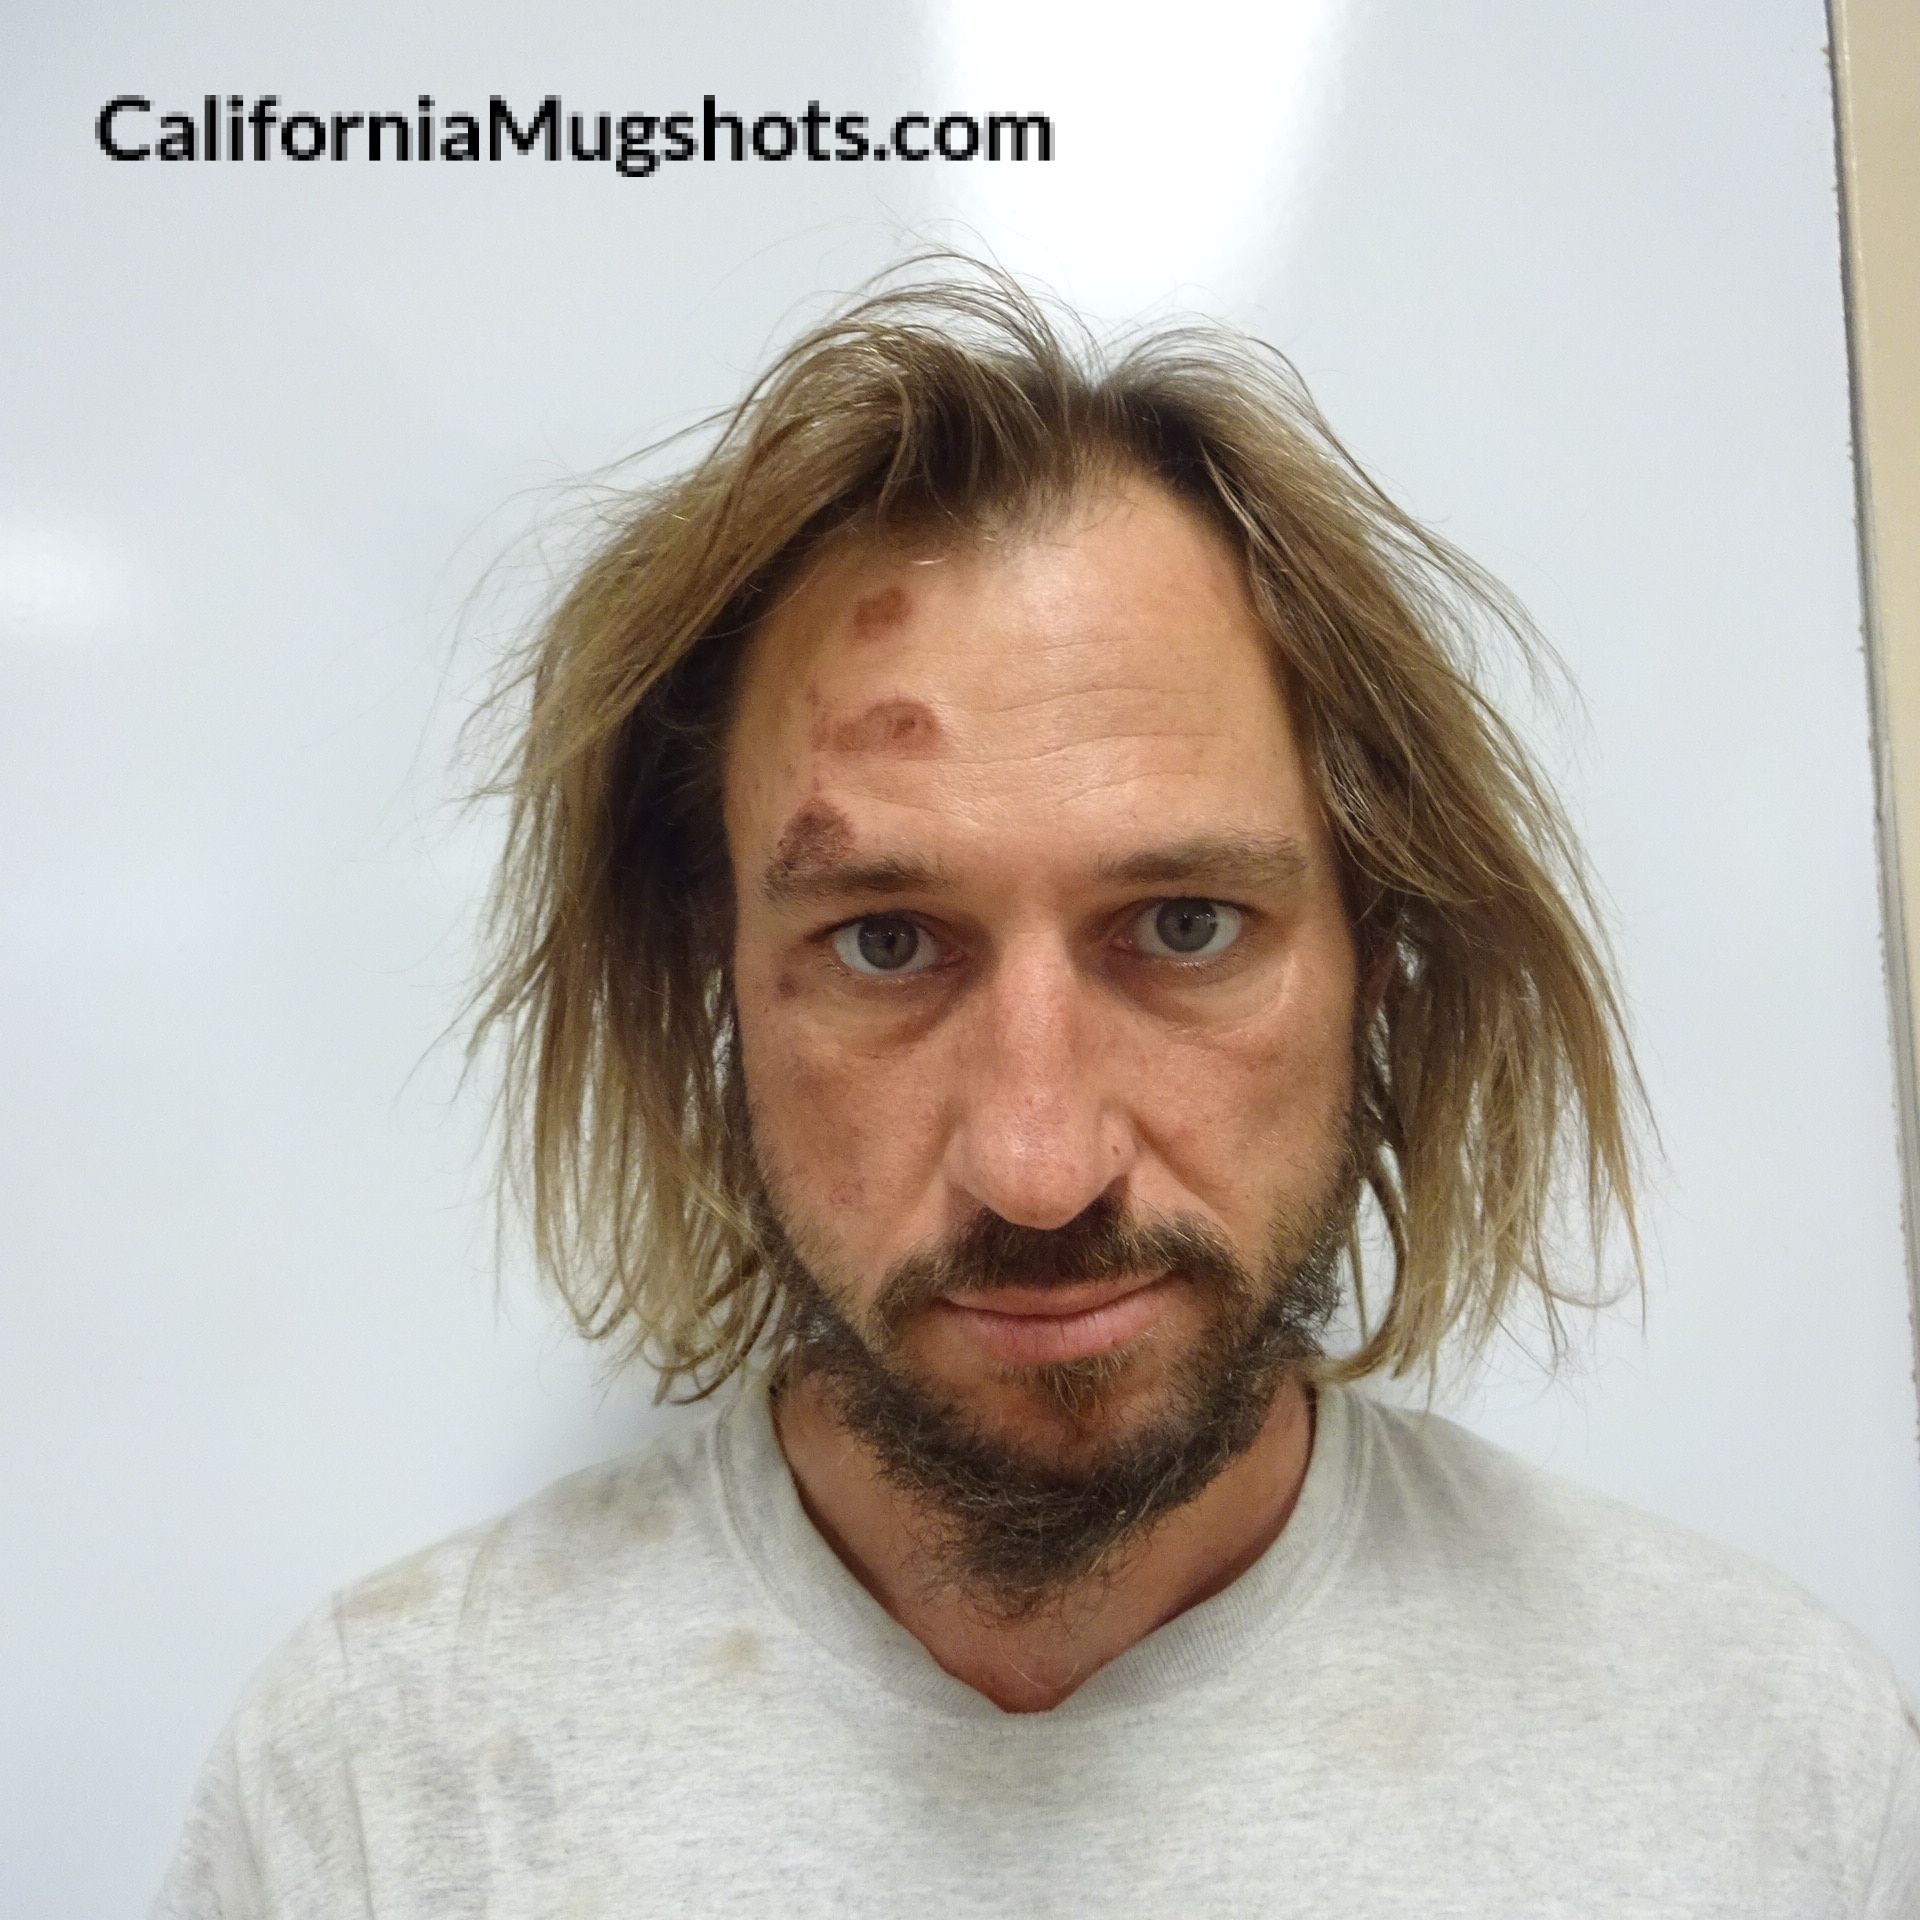 Todd Gary Osterhout arrested in Lake County,CA